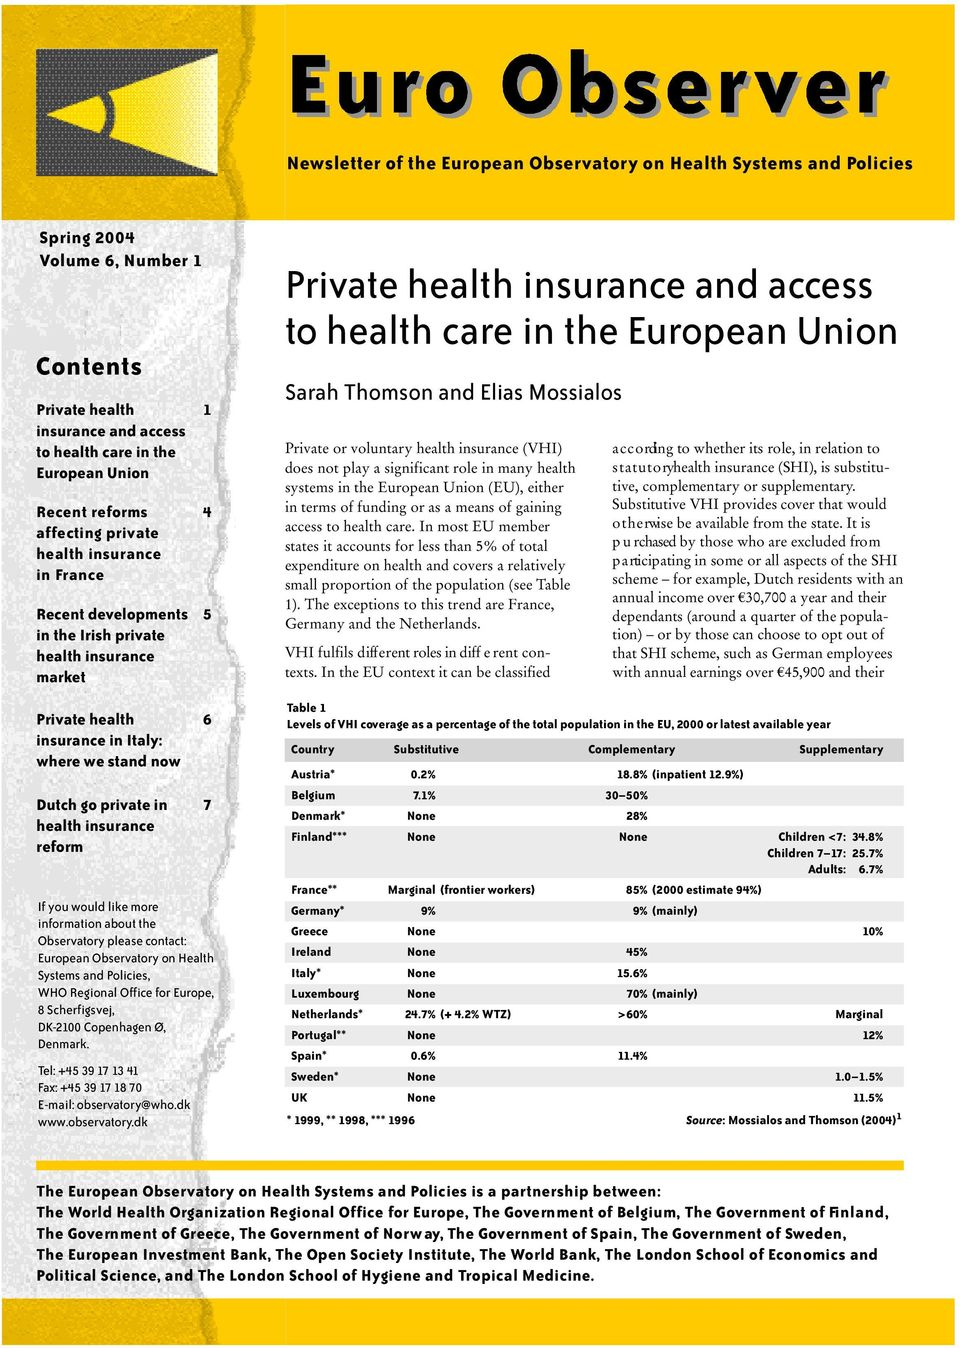 Dutch go private in 7 health insurance reform If you would like more information about the Observatory please contact: European Observatory on Health Systems and Policies, WHO Regional Office for